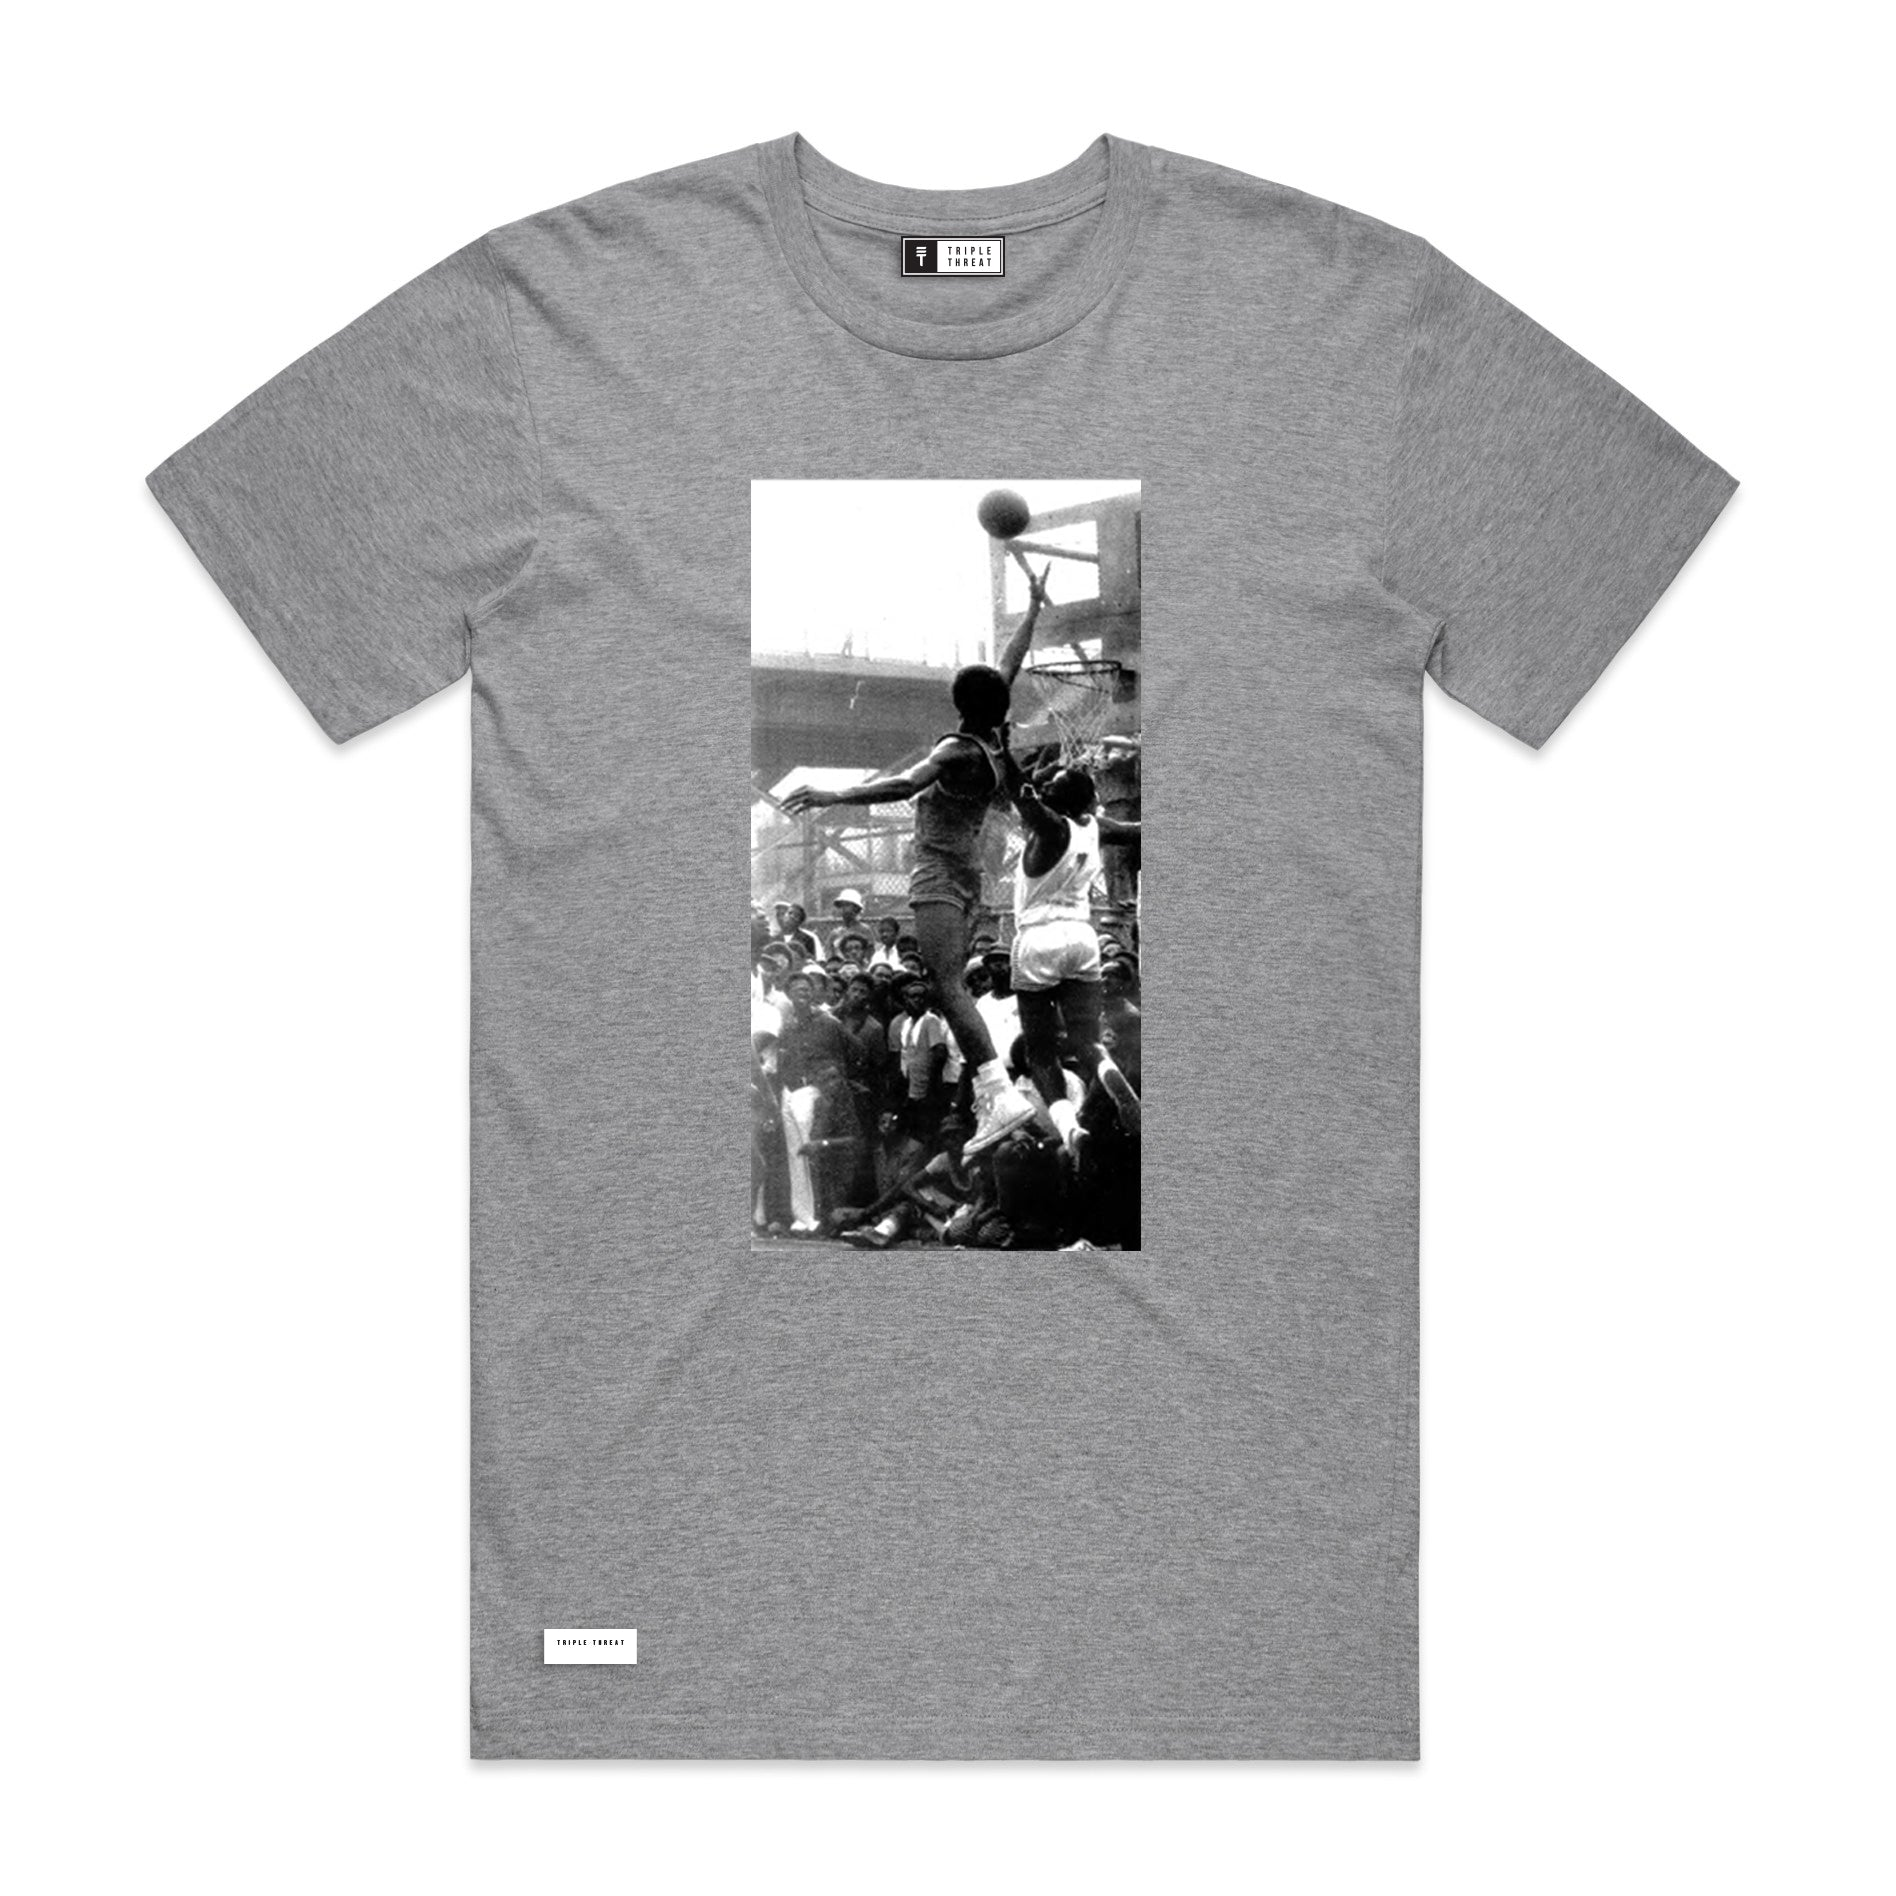 SCHOOLYARD T-SHIRT - GREY